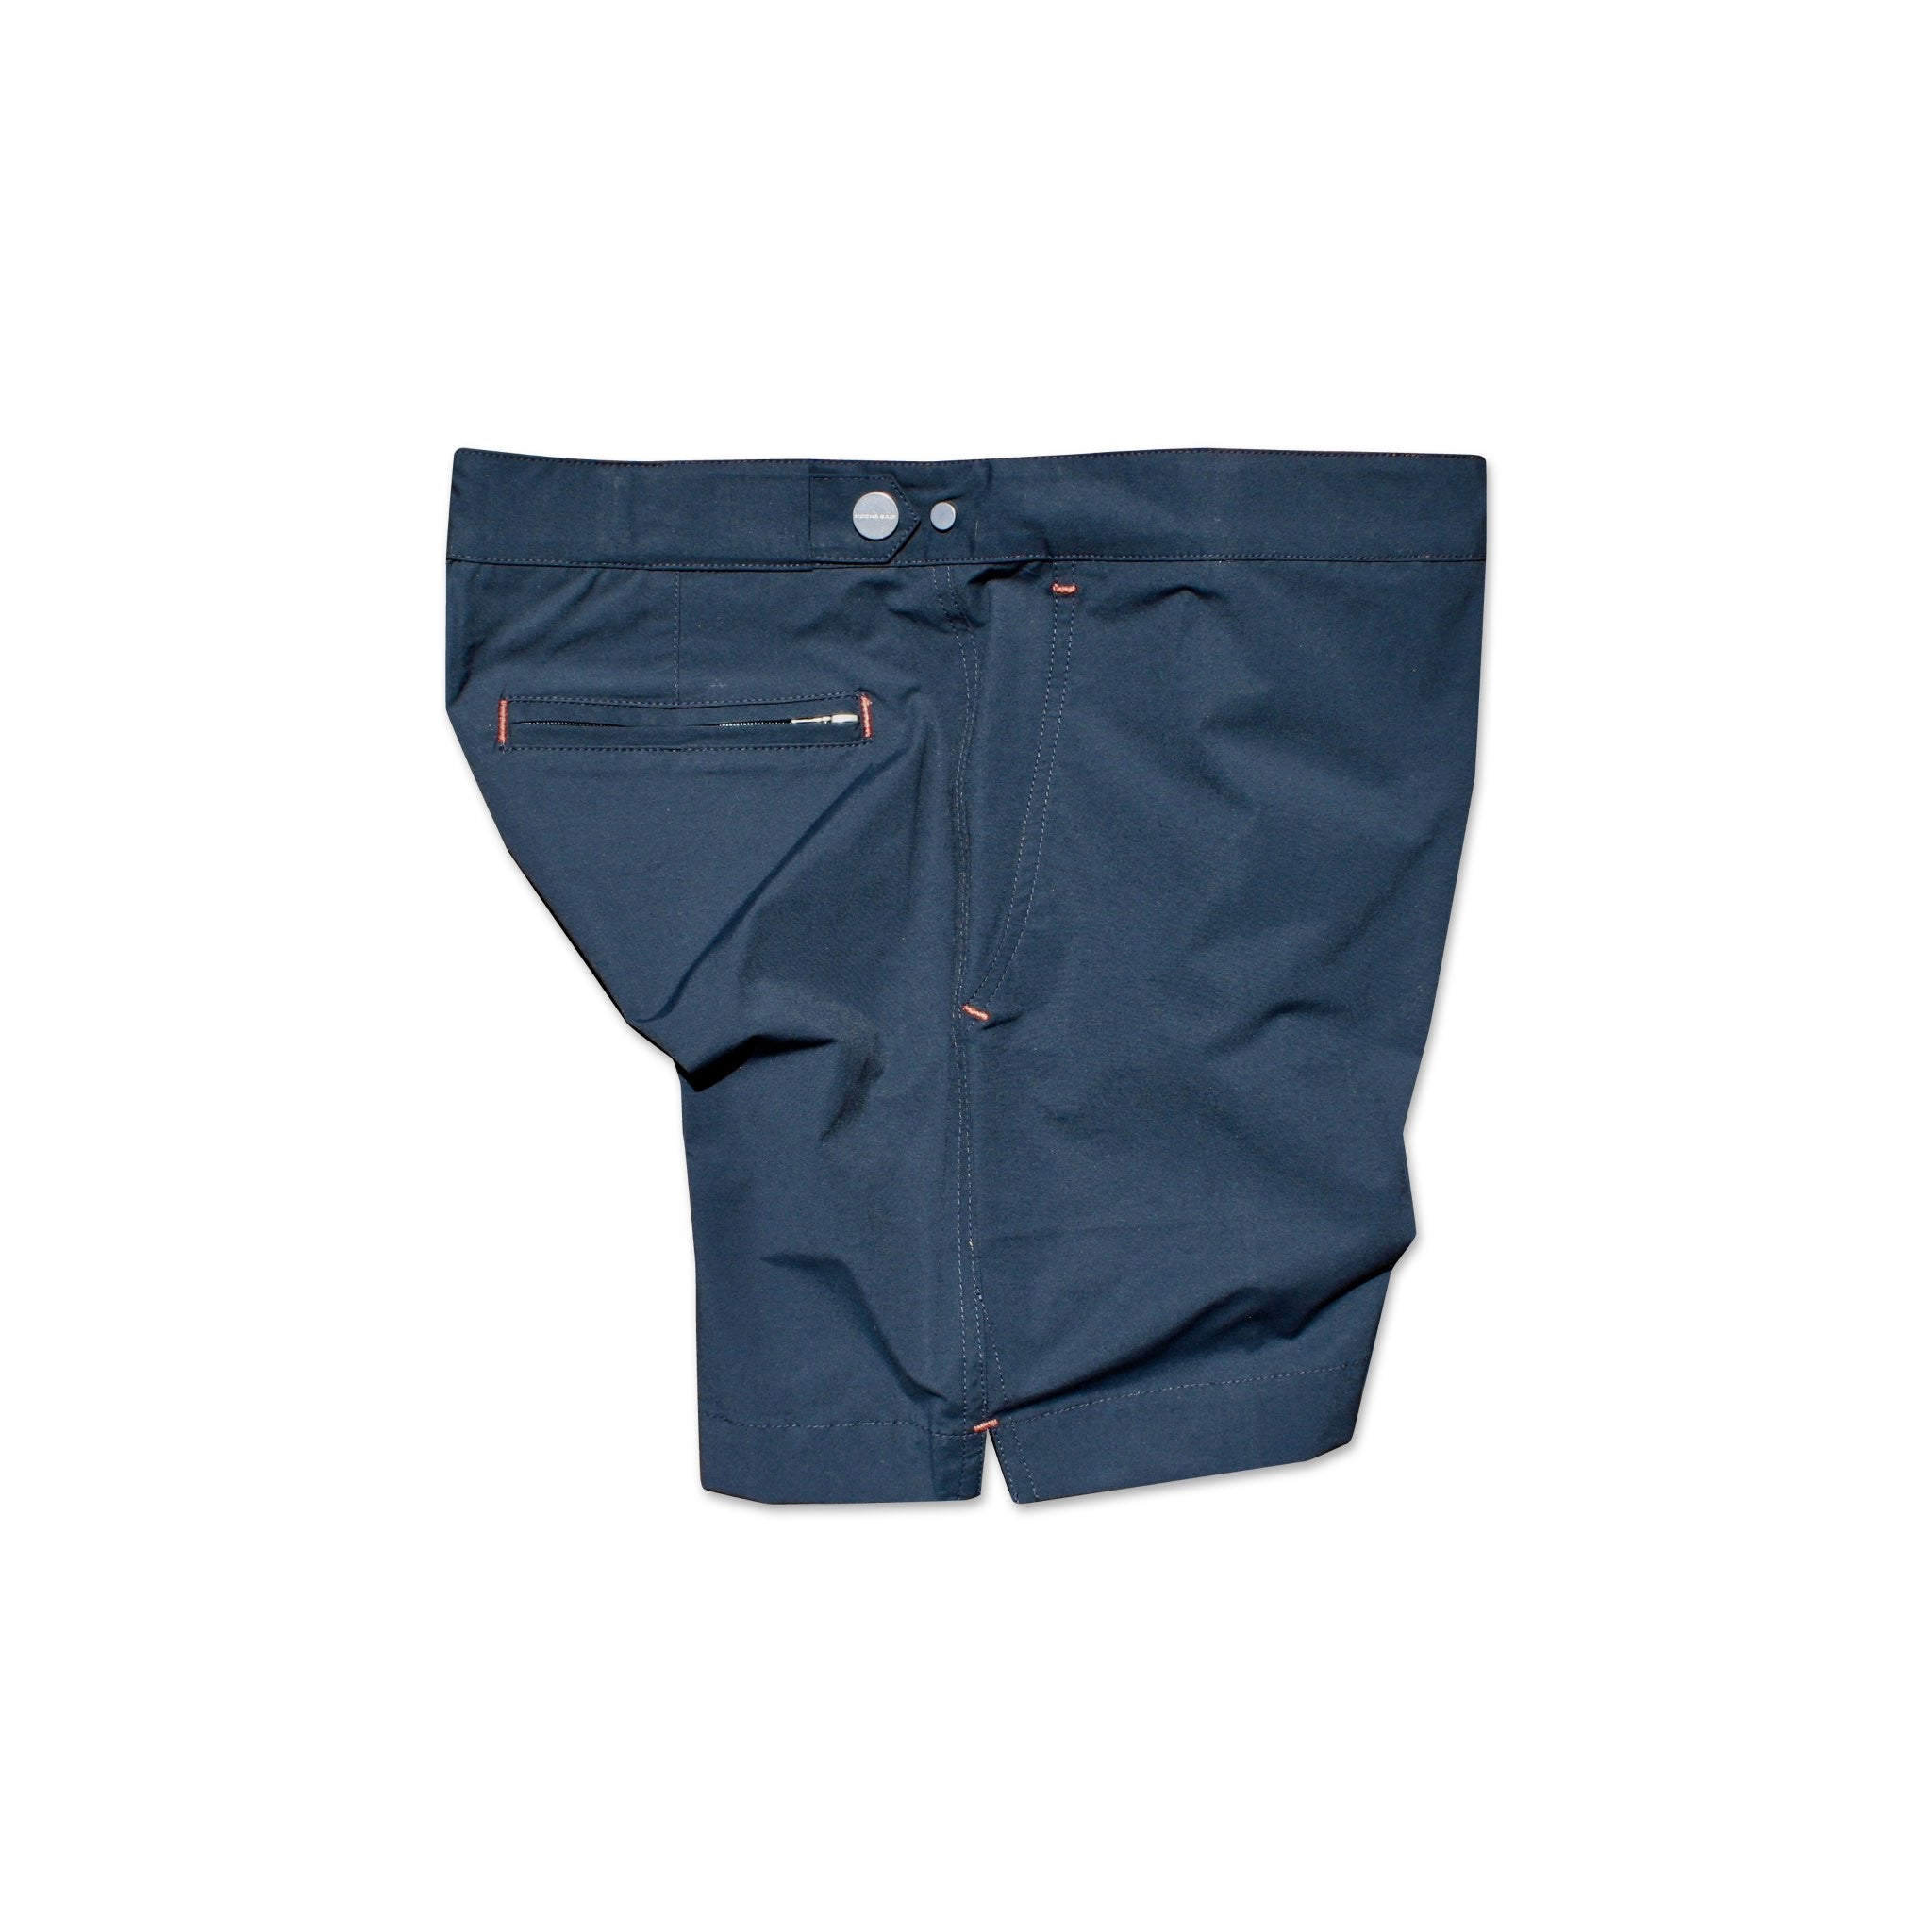 Huck 5 Navy Blue swim shorts